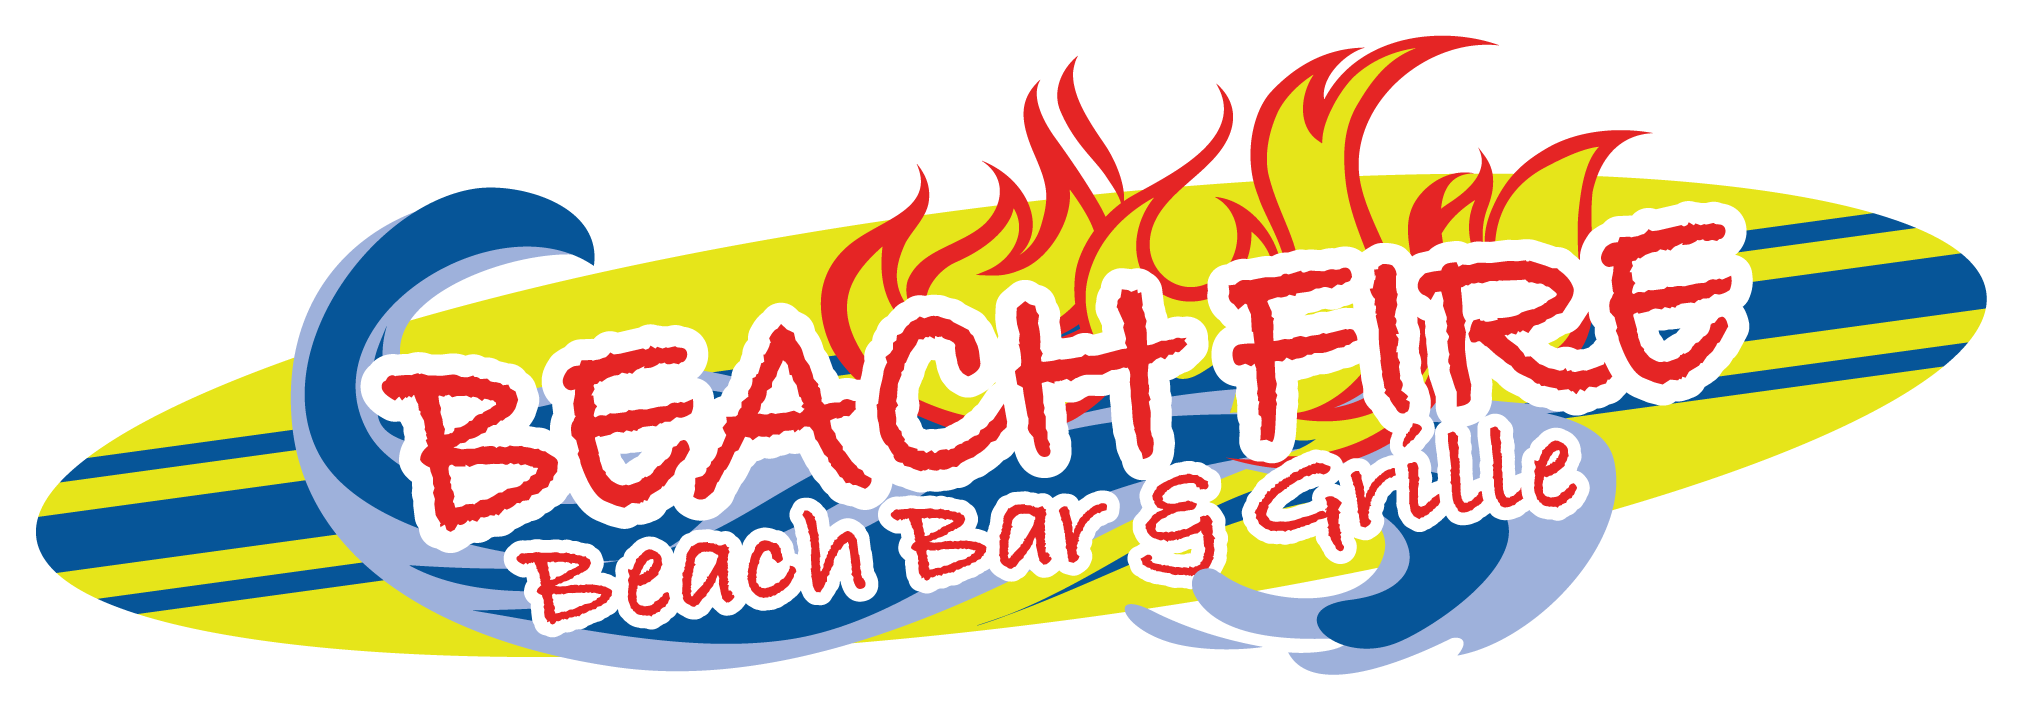 Beach Fire Bar, Clearwater